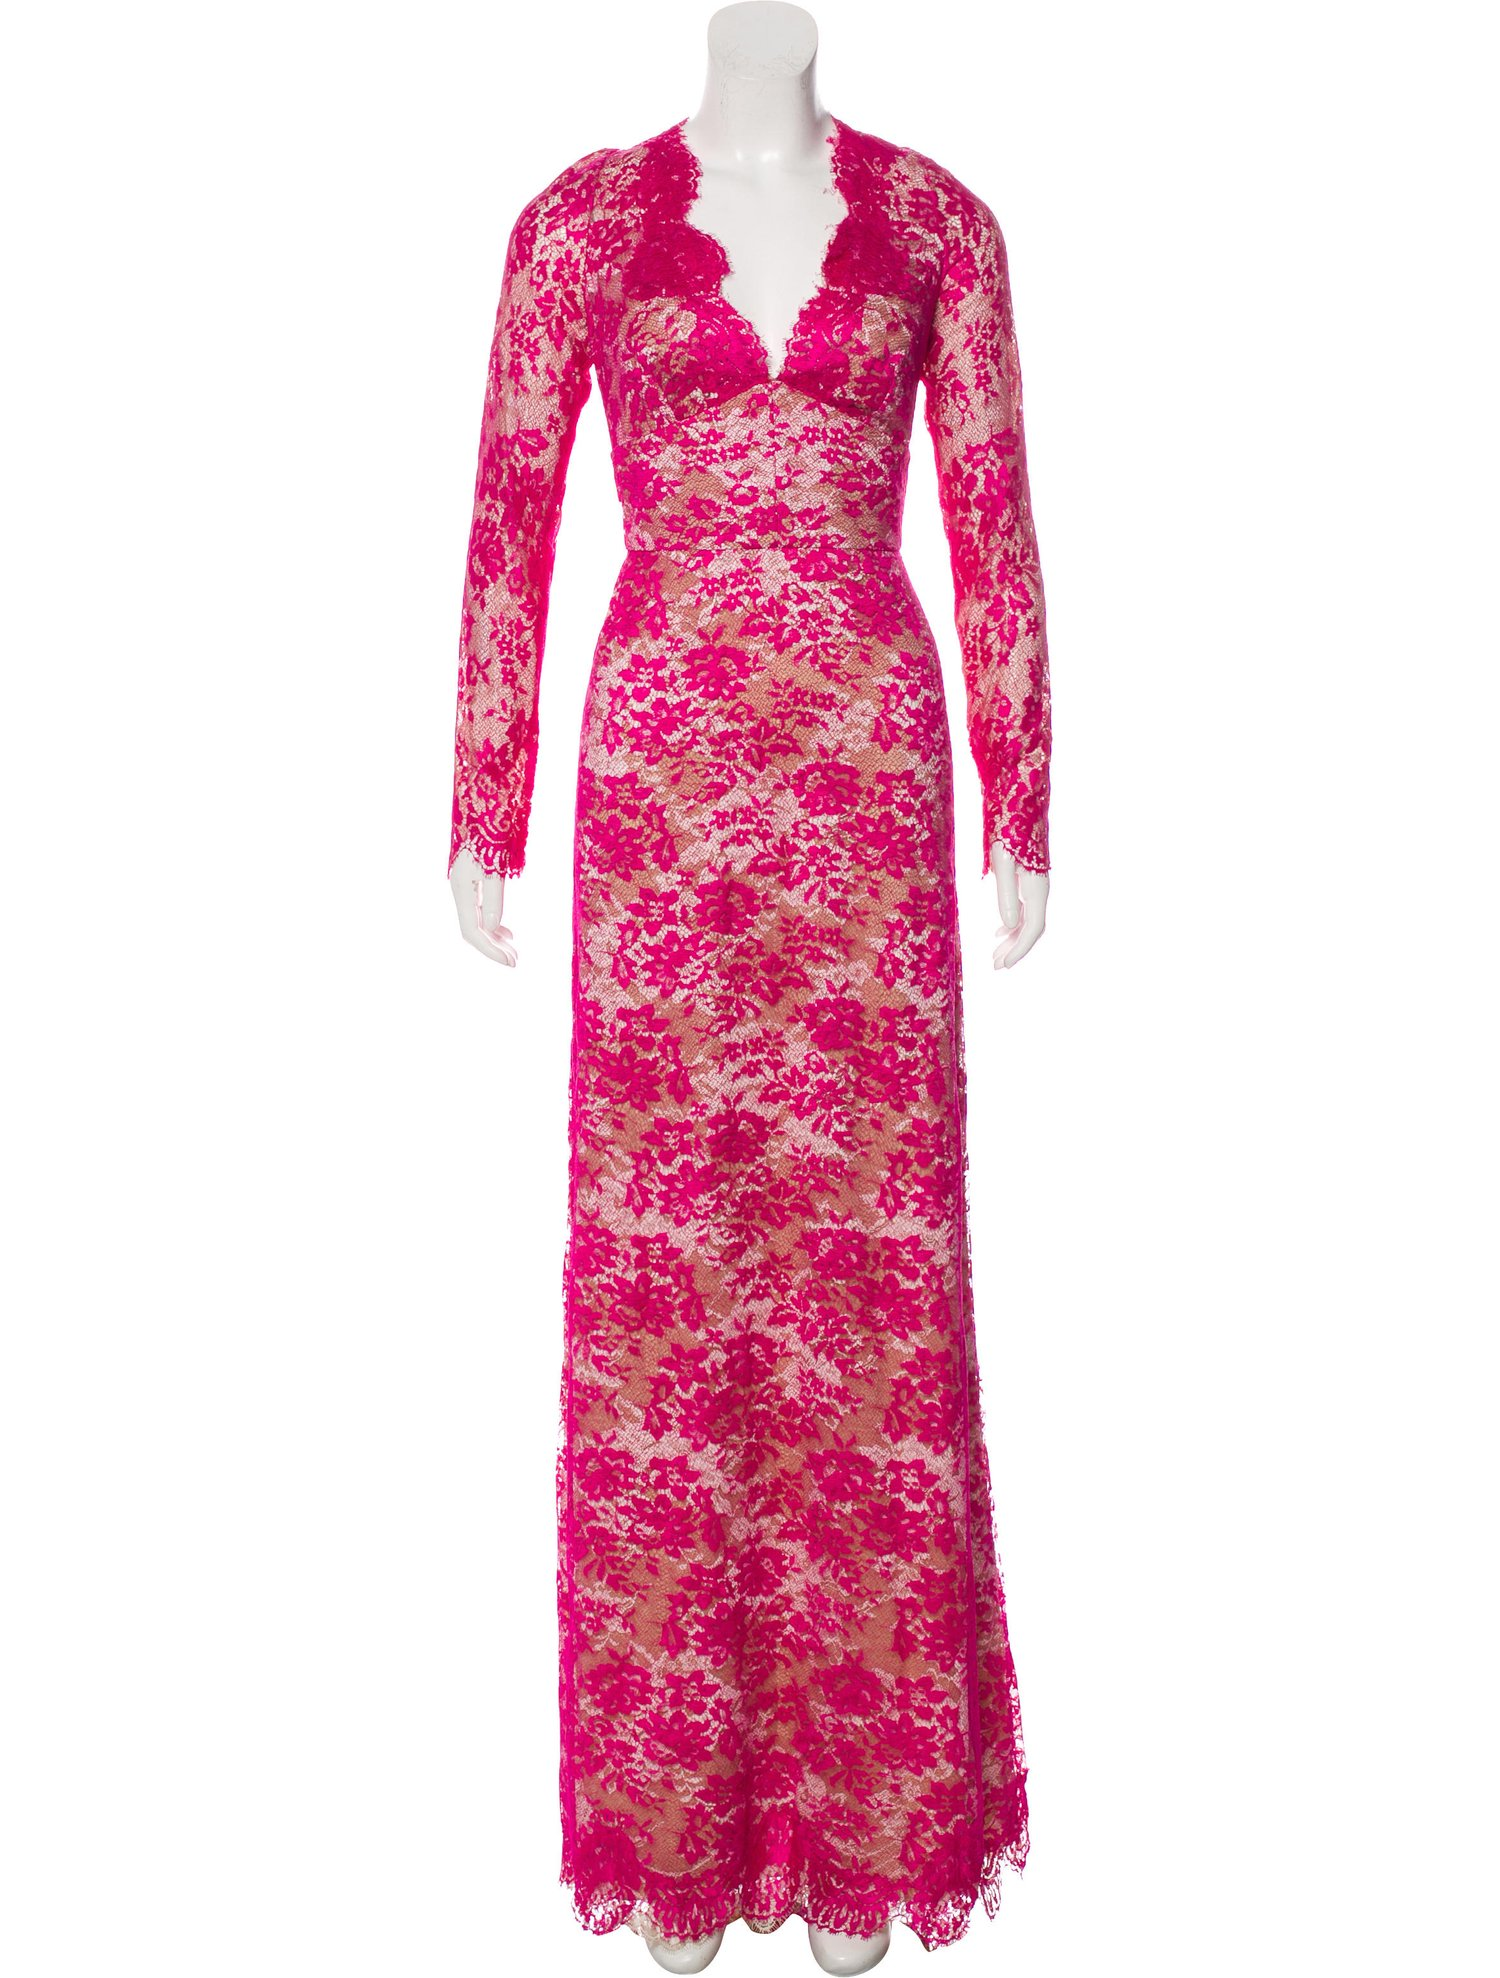 Fuchsia Monique Lhuillier Gown, $675 @therealreal.com